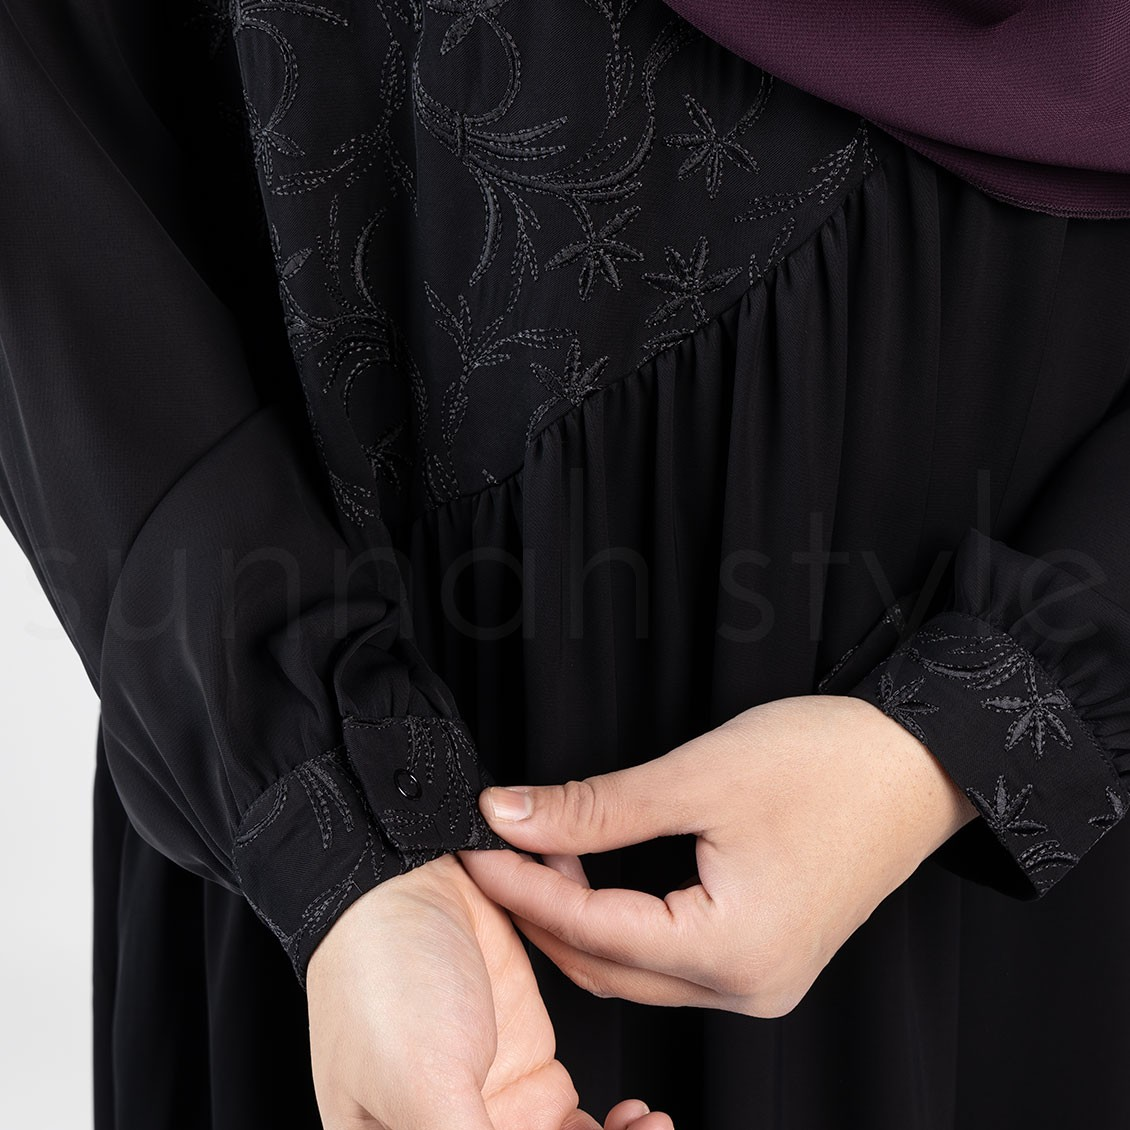 Sunnah Style Floral Umbrella Abaya Black Embroidered